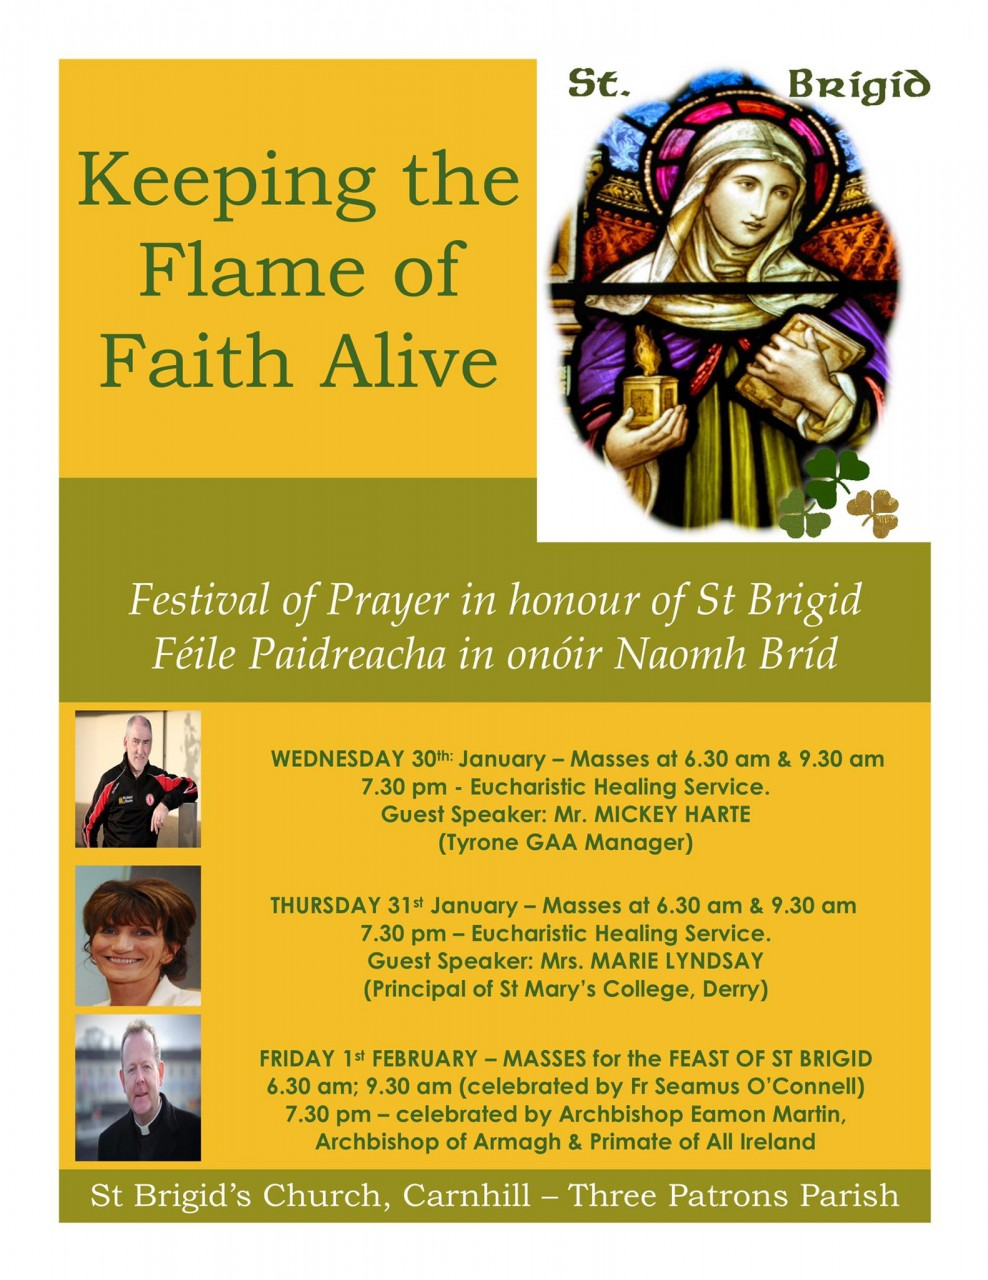 Festival of Prayer - St Brigid's Church, Carnhill, Derry - 30th Jan-1st Feb 2019